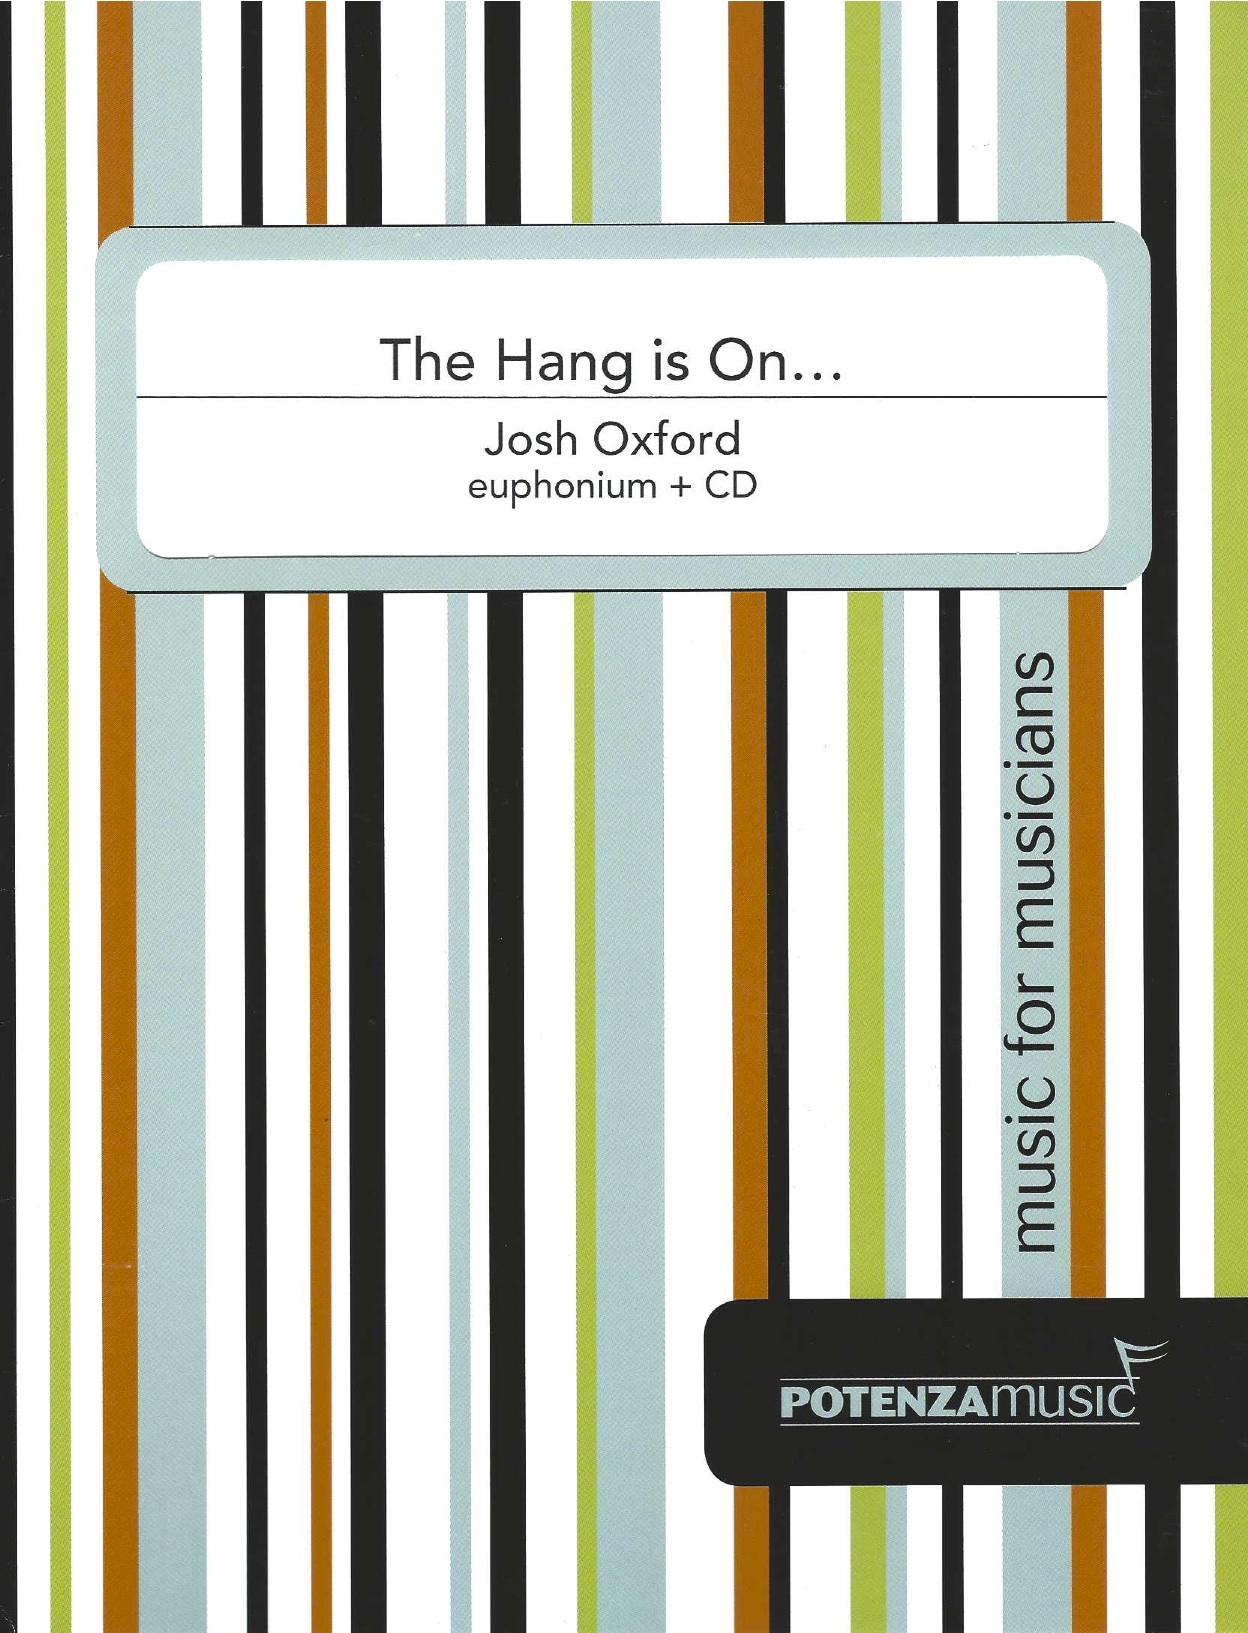 The Hang is On... - Josh Oxford - Euphonium and CD